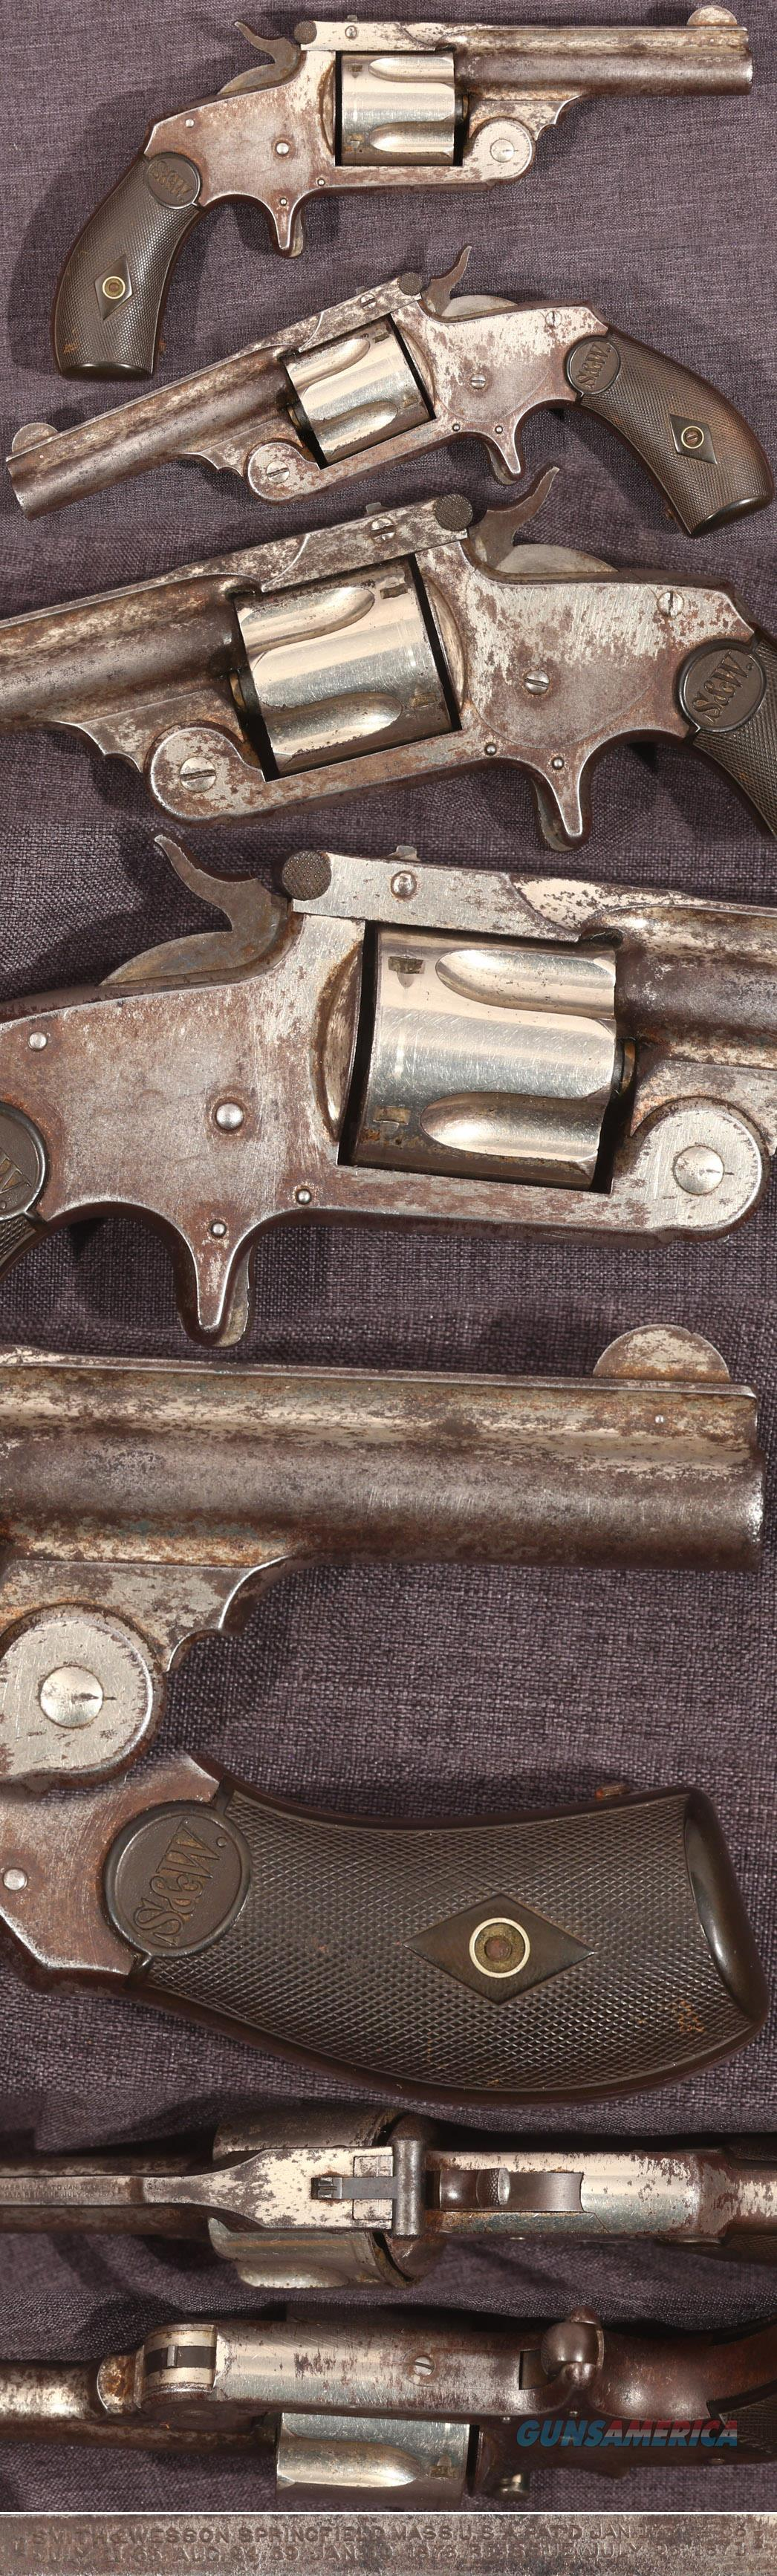 Smith & Wesson 38 SA second model revolver  Guns > Pistols > Smith & Wesson Revolvers > Pre-1899